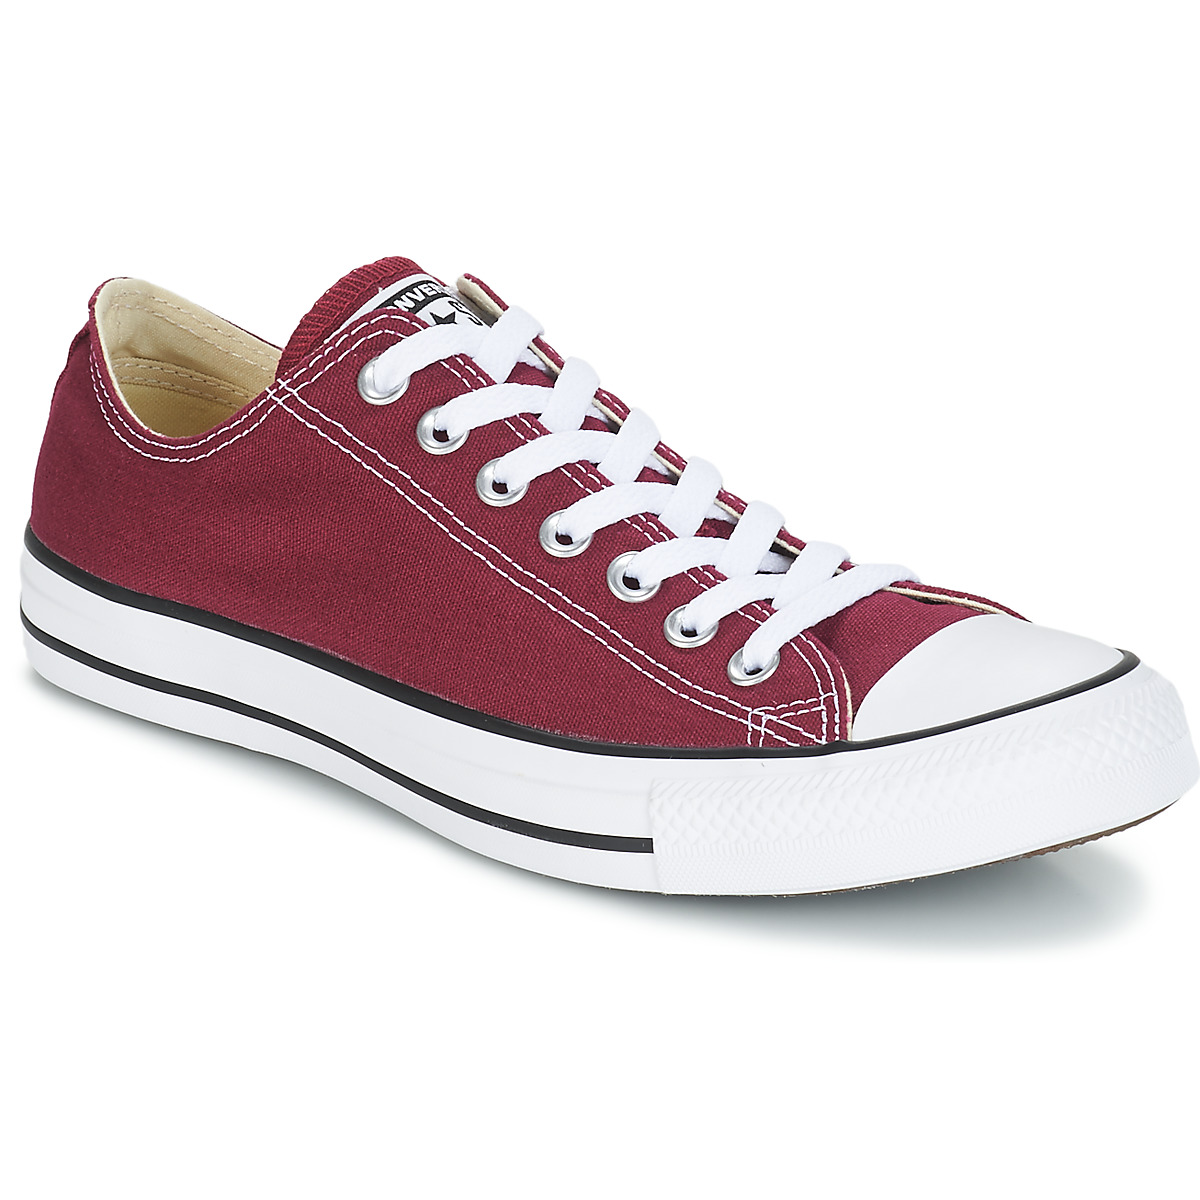 CONVERSE ALL STAR CUIR MARRON T36 UK 35